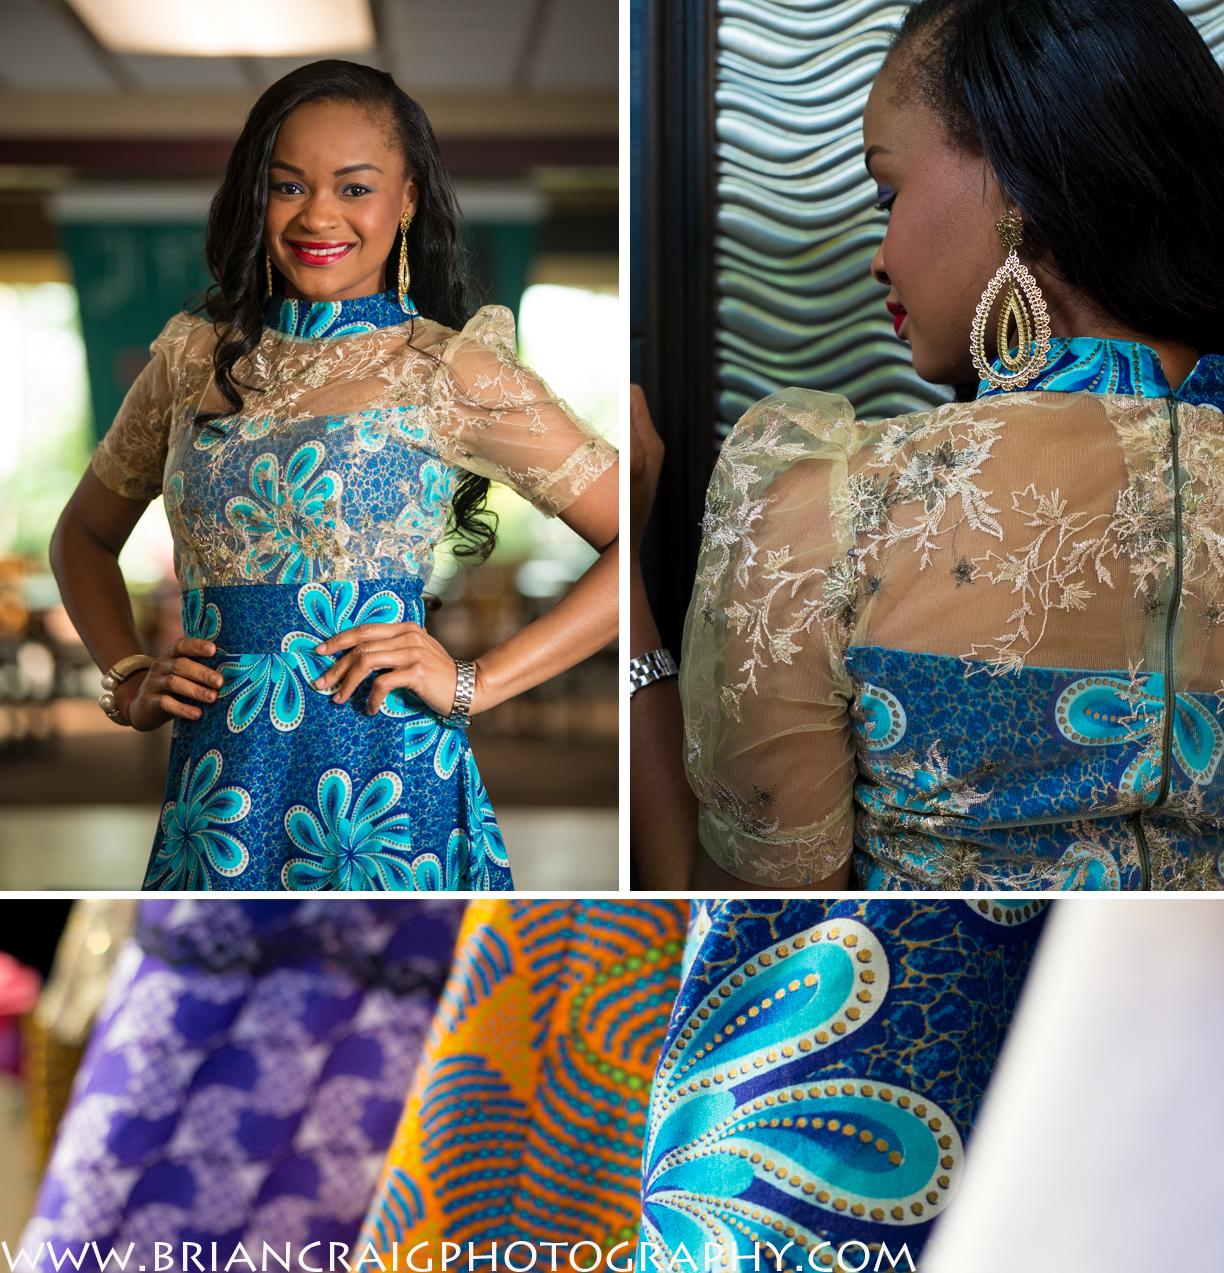 Nigerian fashions.    I had the pleasure of shooting photos for a fashion show here in #Detroit with a great young designer. JI Fashions. Her market is creating unique but classic African clothing for ladies and men here in America. Evening gowns for special events, or when you just want to stand out at an event. She is creating items with authentic fabrics and current style of Nigeria that you just can't easily get here in America.